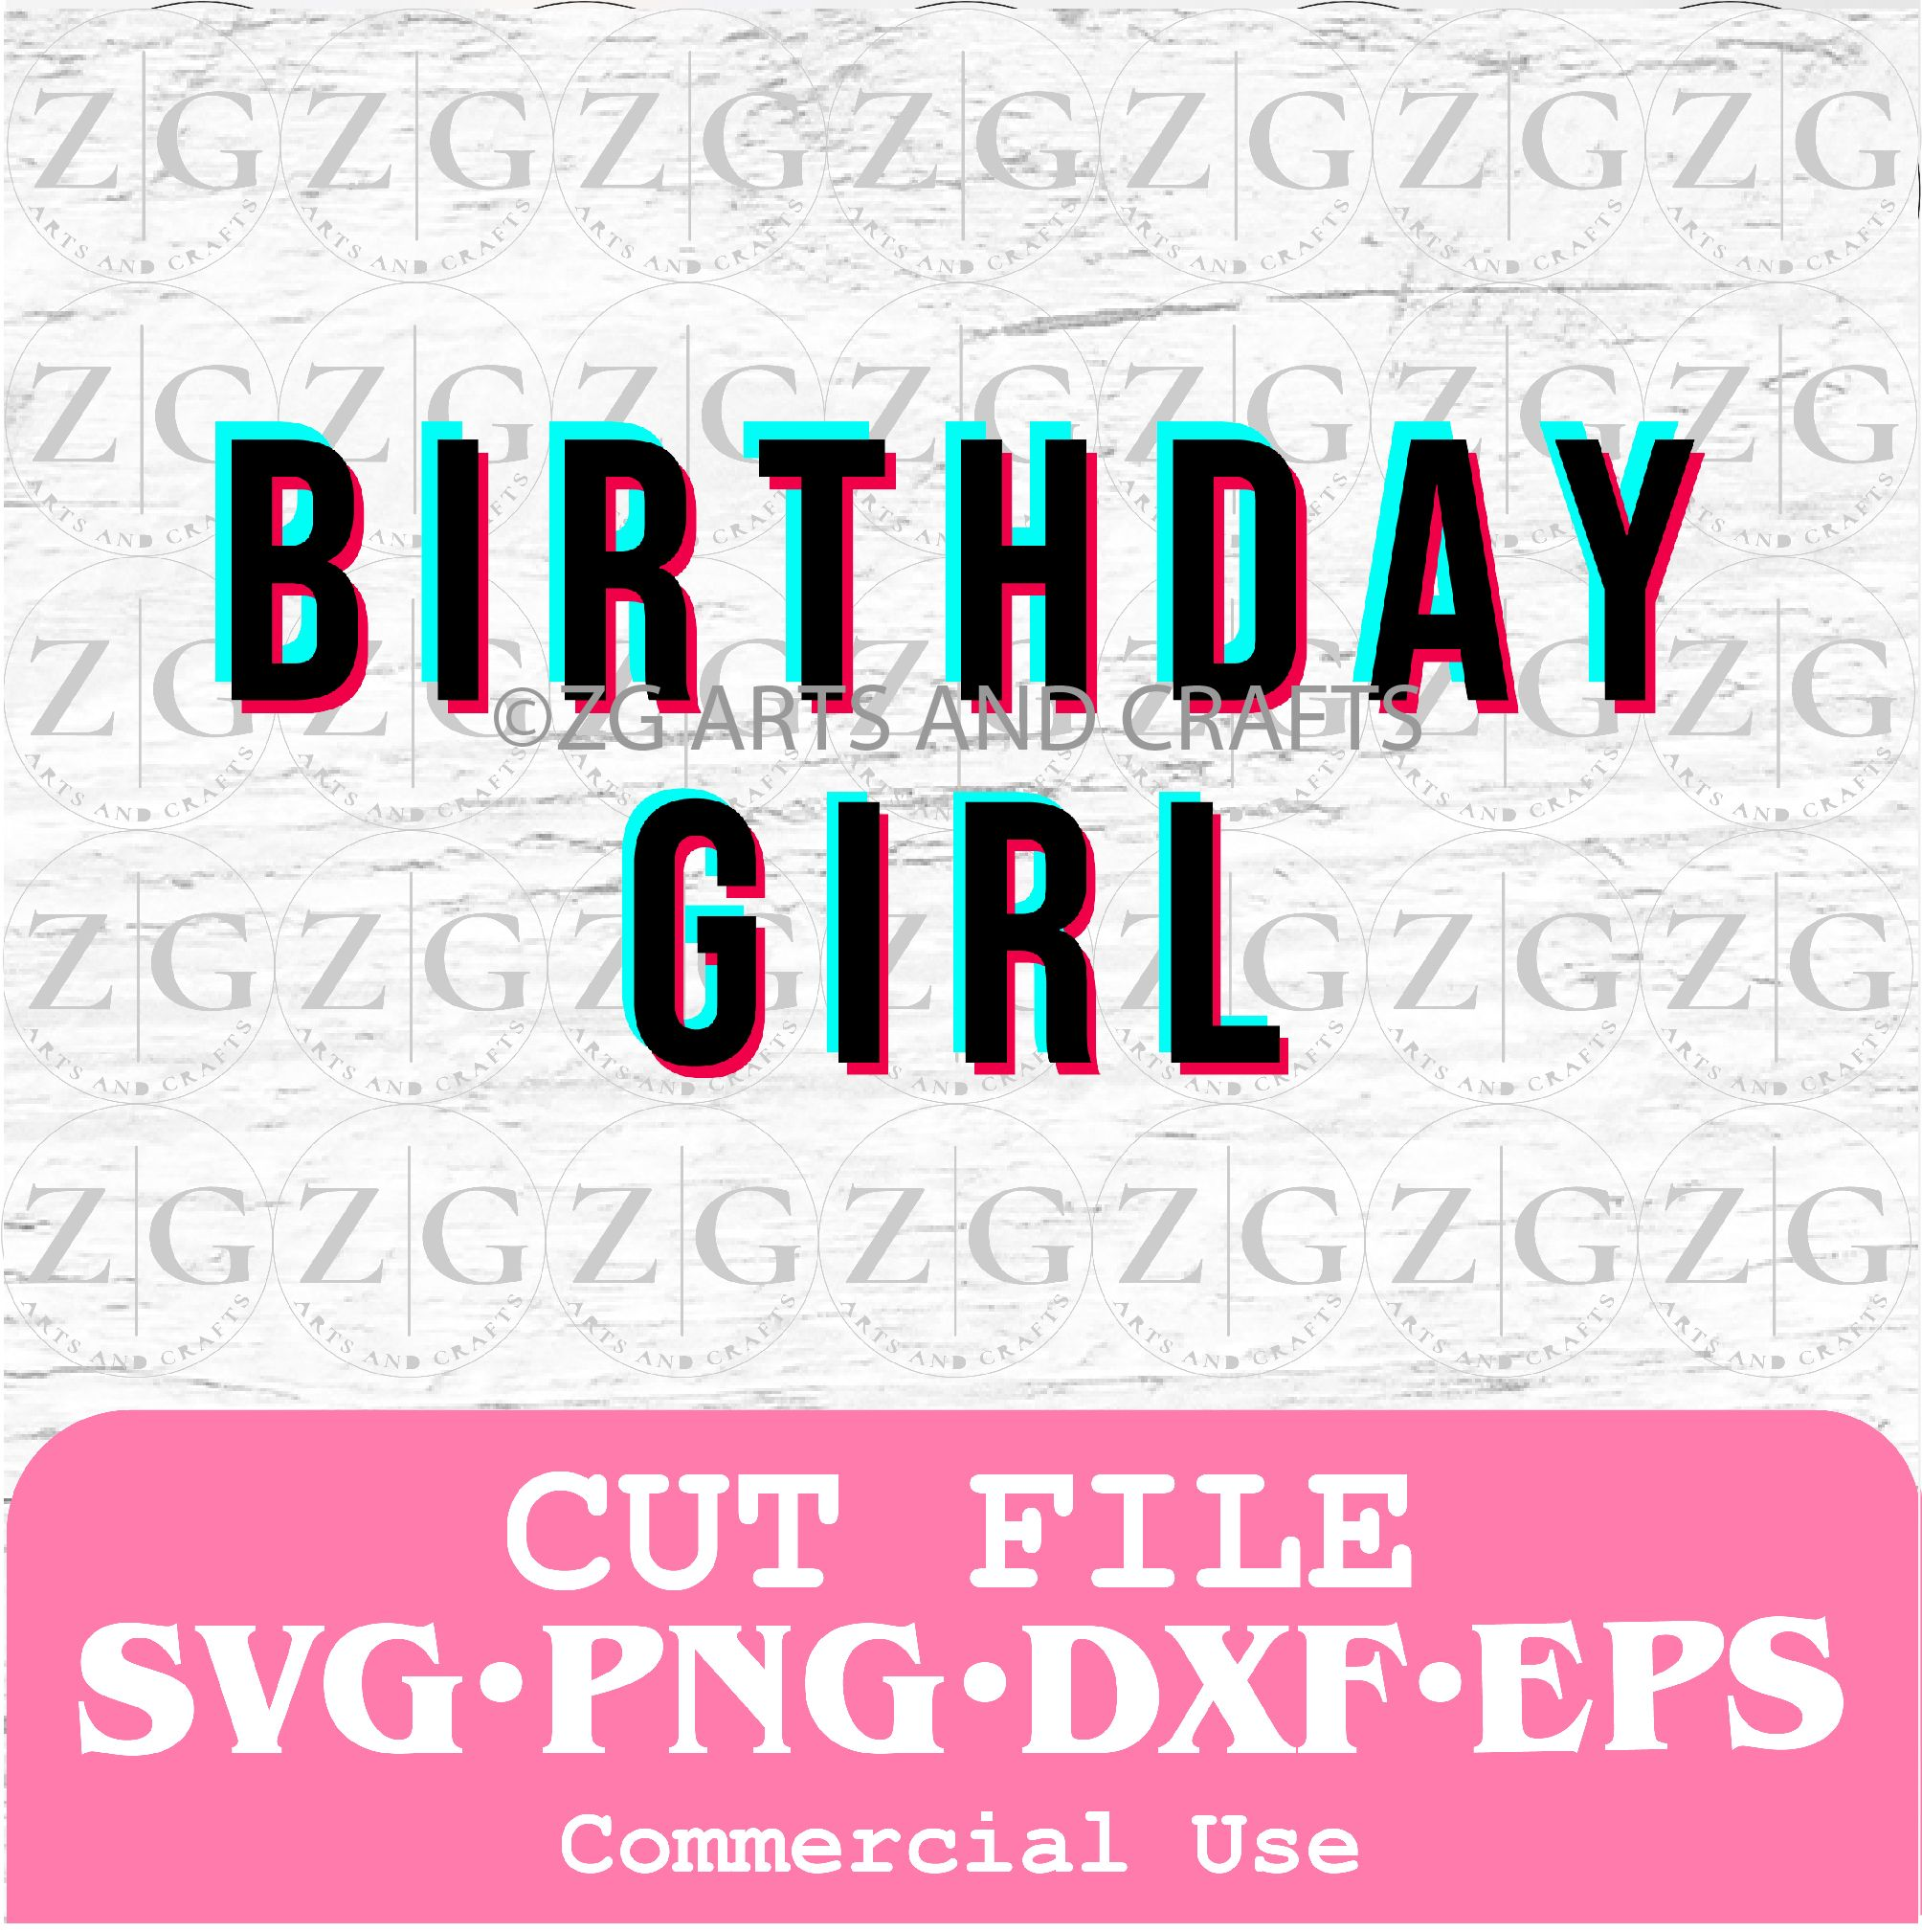 Birthday Girl Svg Tik Tok Svg Svg Files For Cricut October Birthday Svg Tik Tok Svg Savage Svg Tiktok Mom Tiktok Shirt Design In 2020 Printed Invitations Girl Birthday This Or